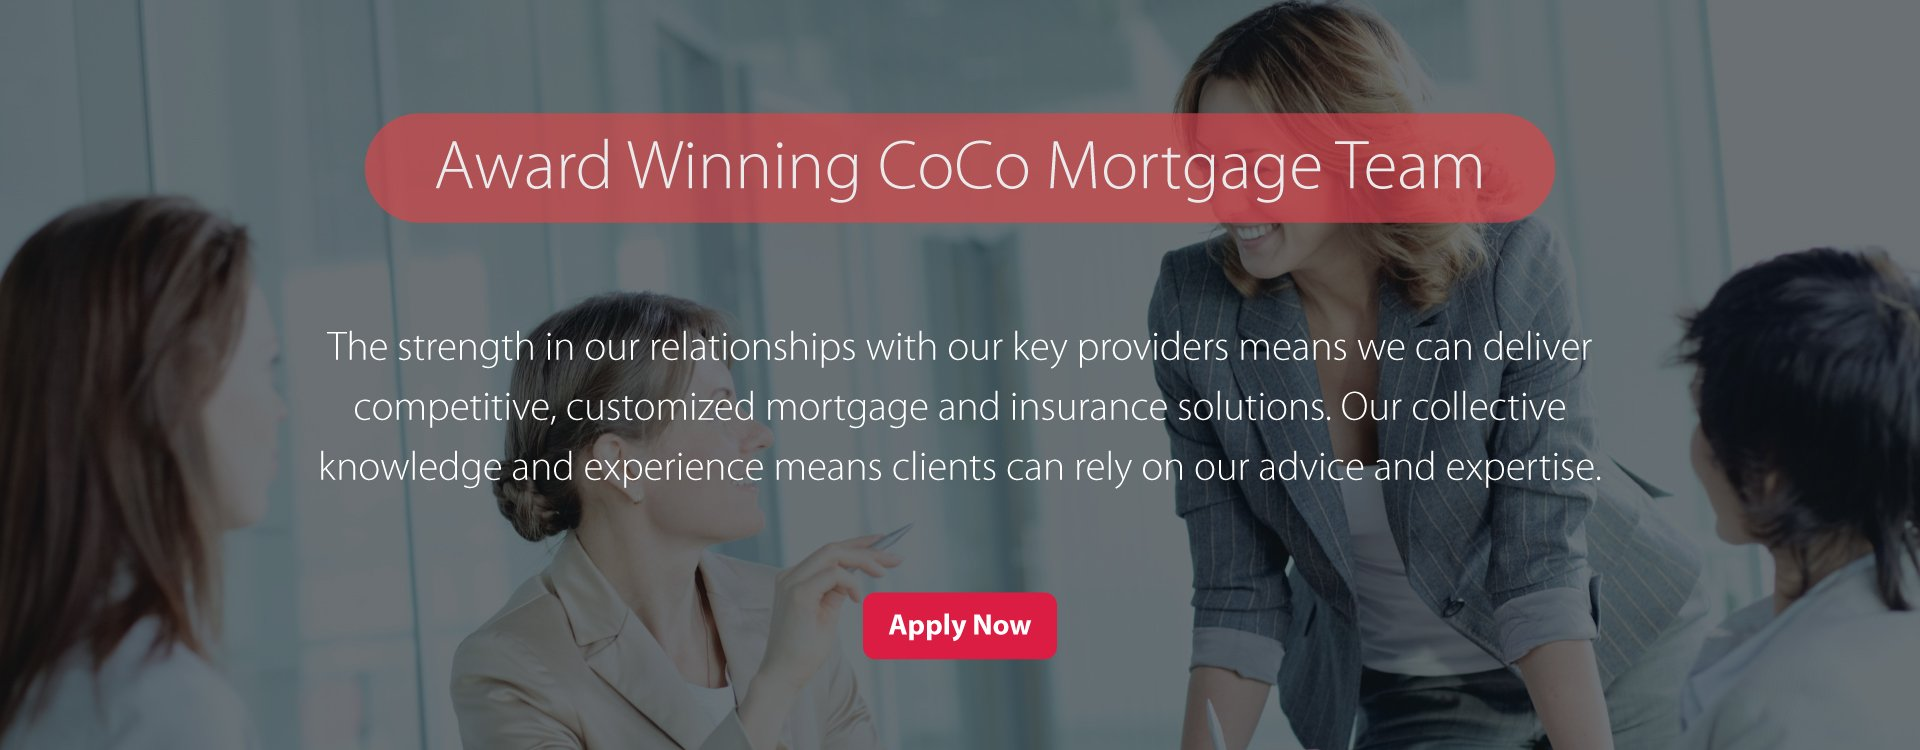 CoCo Mortgage Award Winning Team